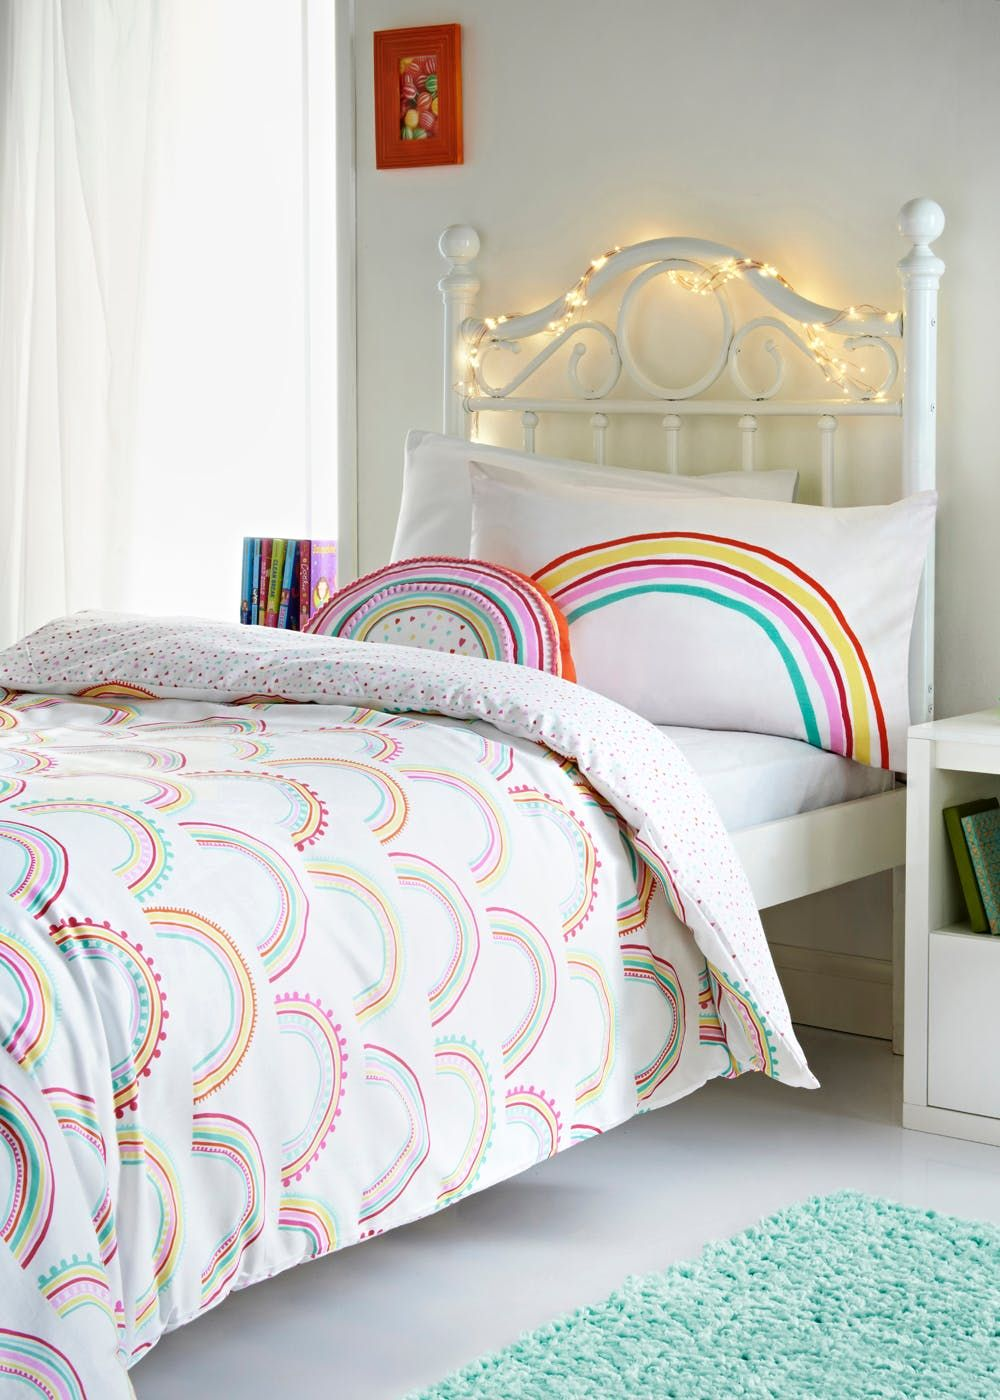 Gentil Kids 100% Cotton Rainbow Duvet Cover (Single)